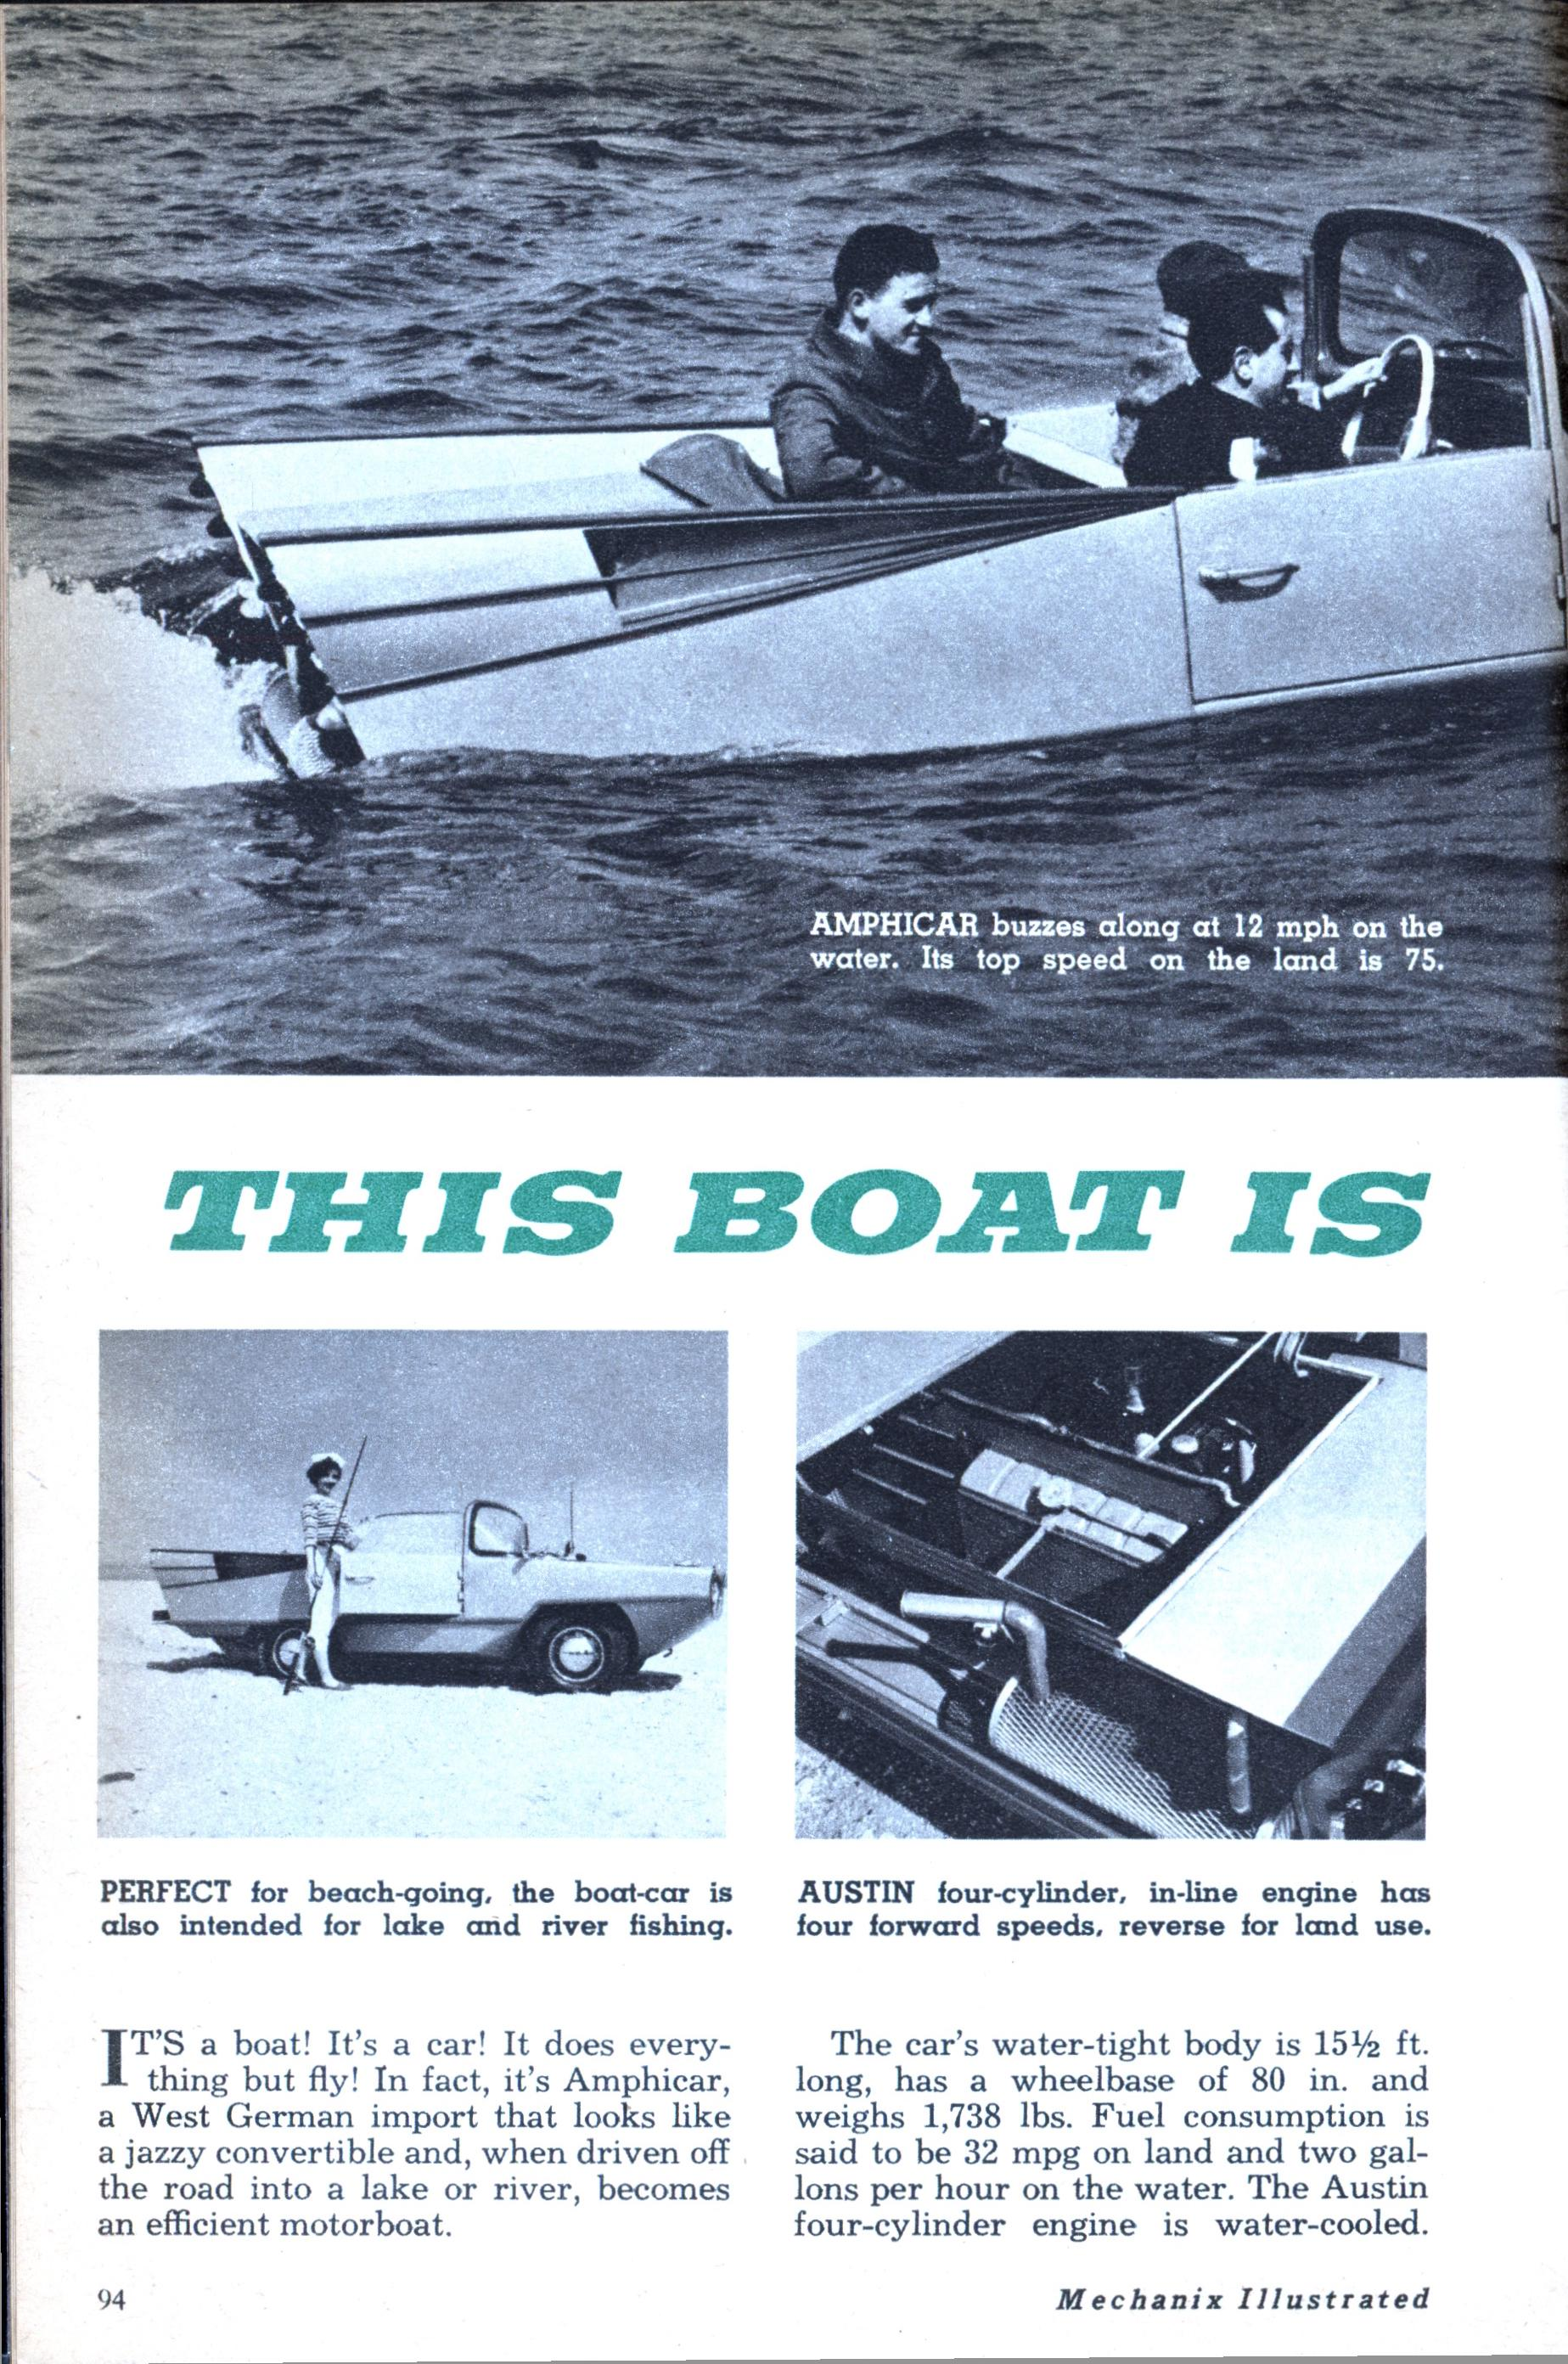 THIS BOAT IS A CAR! | Modern Mechanix